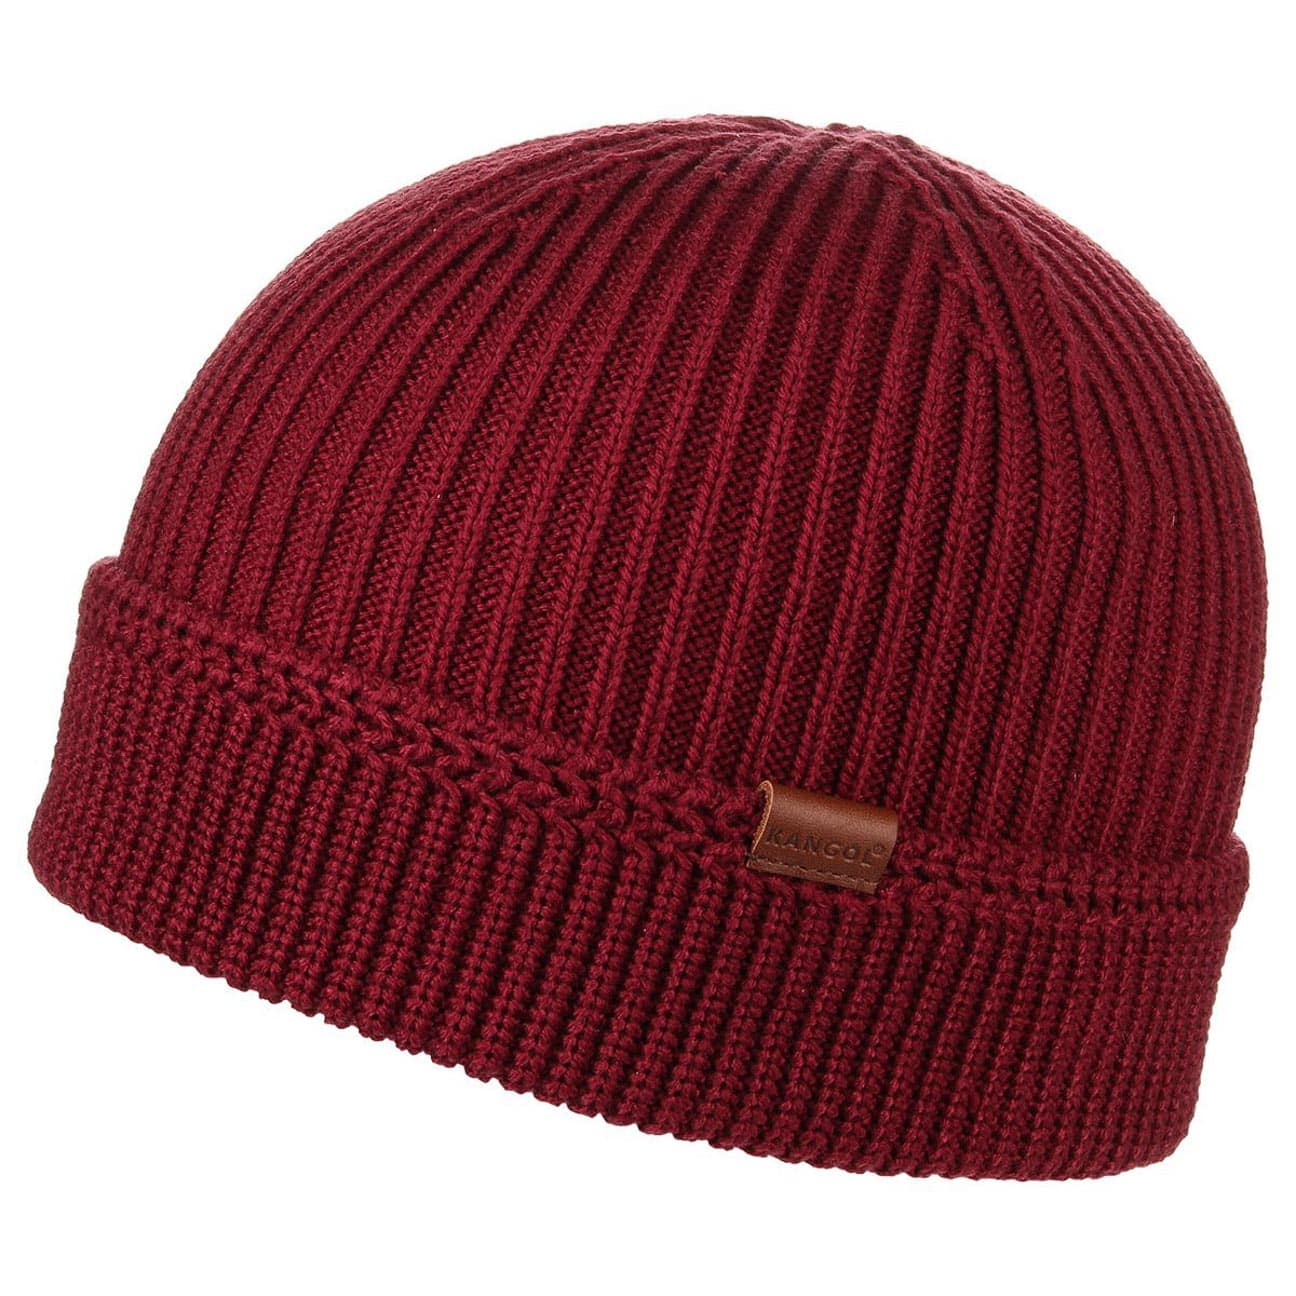 5fb3a2ee91e ... Squad Cuff Pull On by Kangol - bordeaux 1 ...